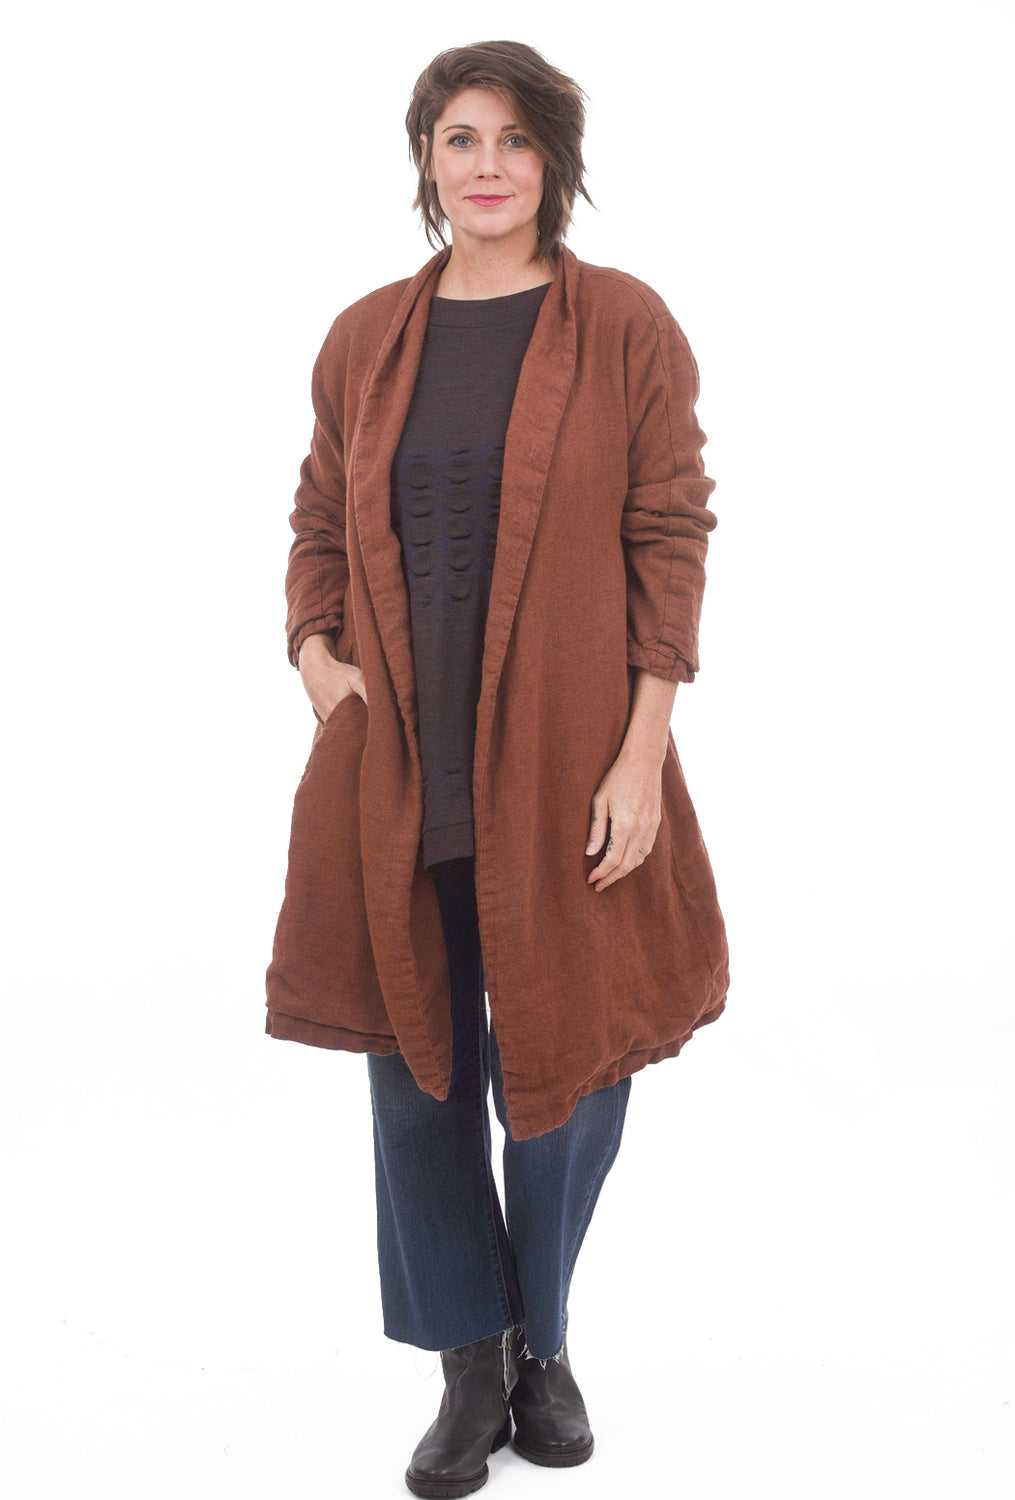 CP Shades Marian Wool Topcoat, Pluot